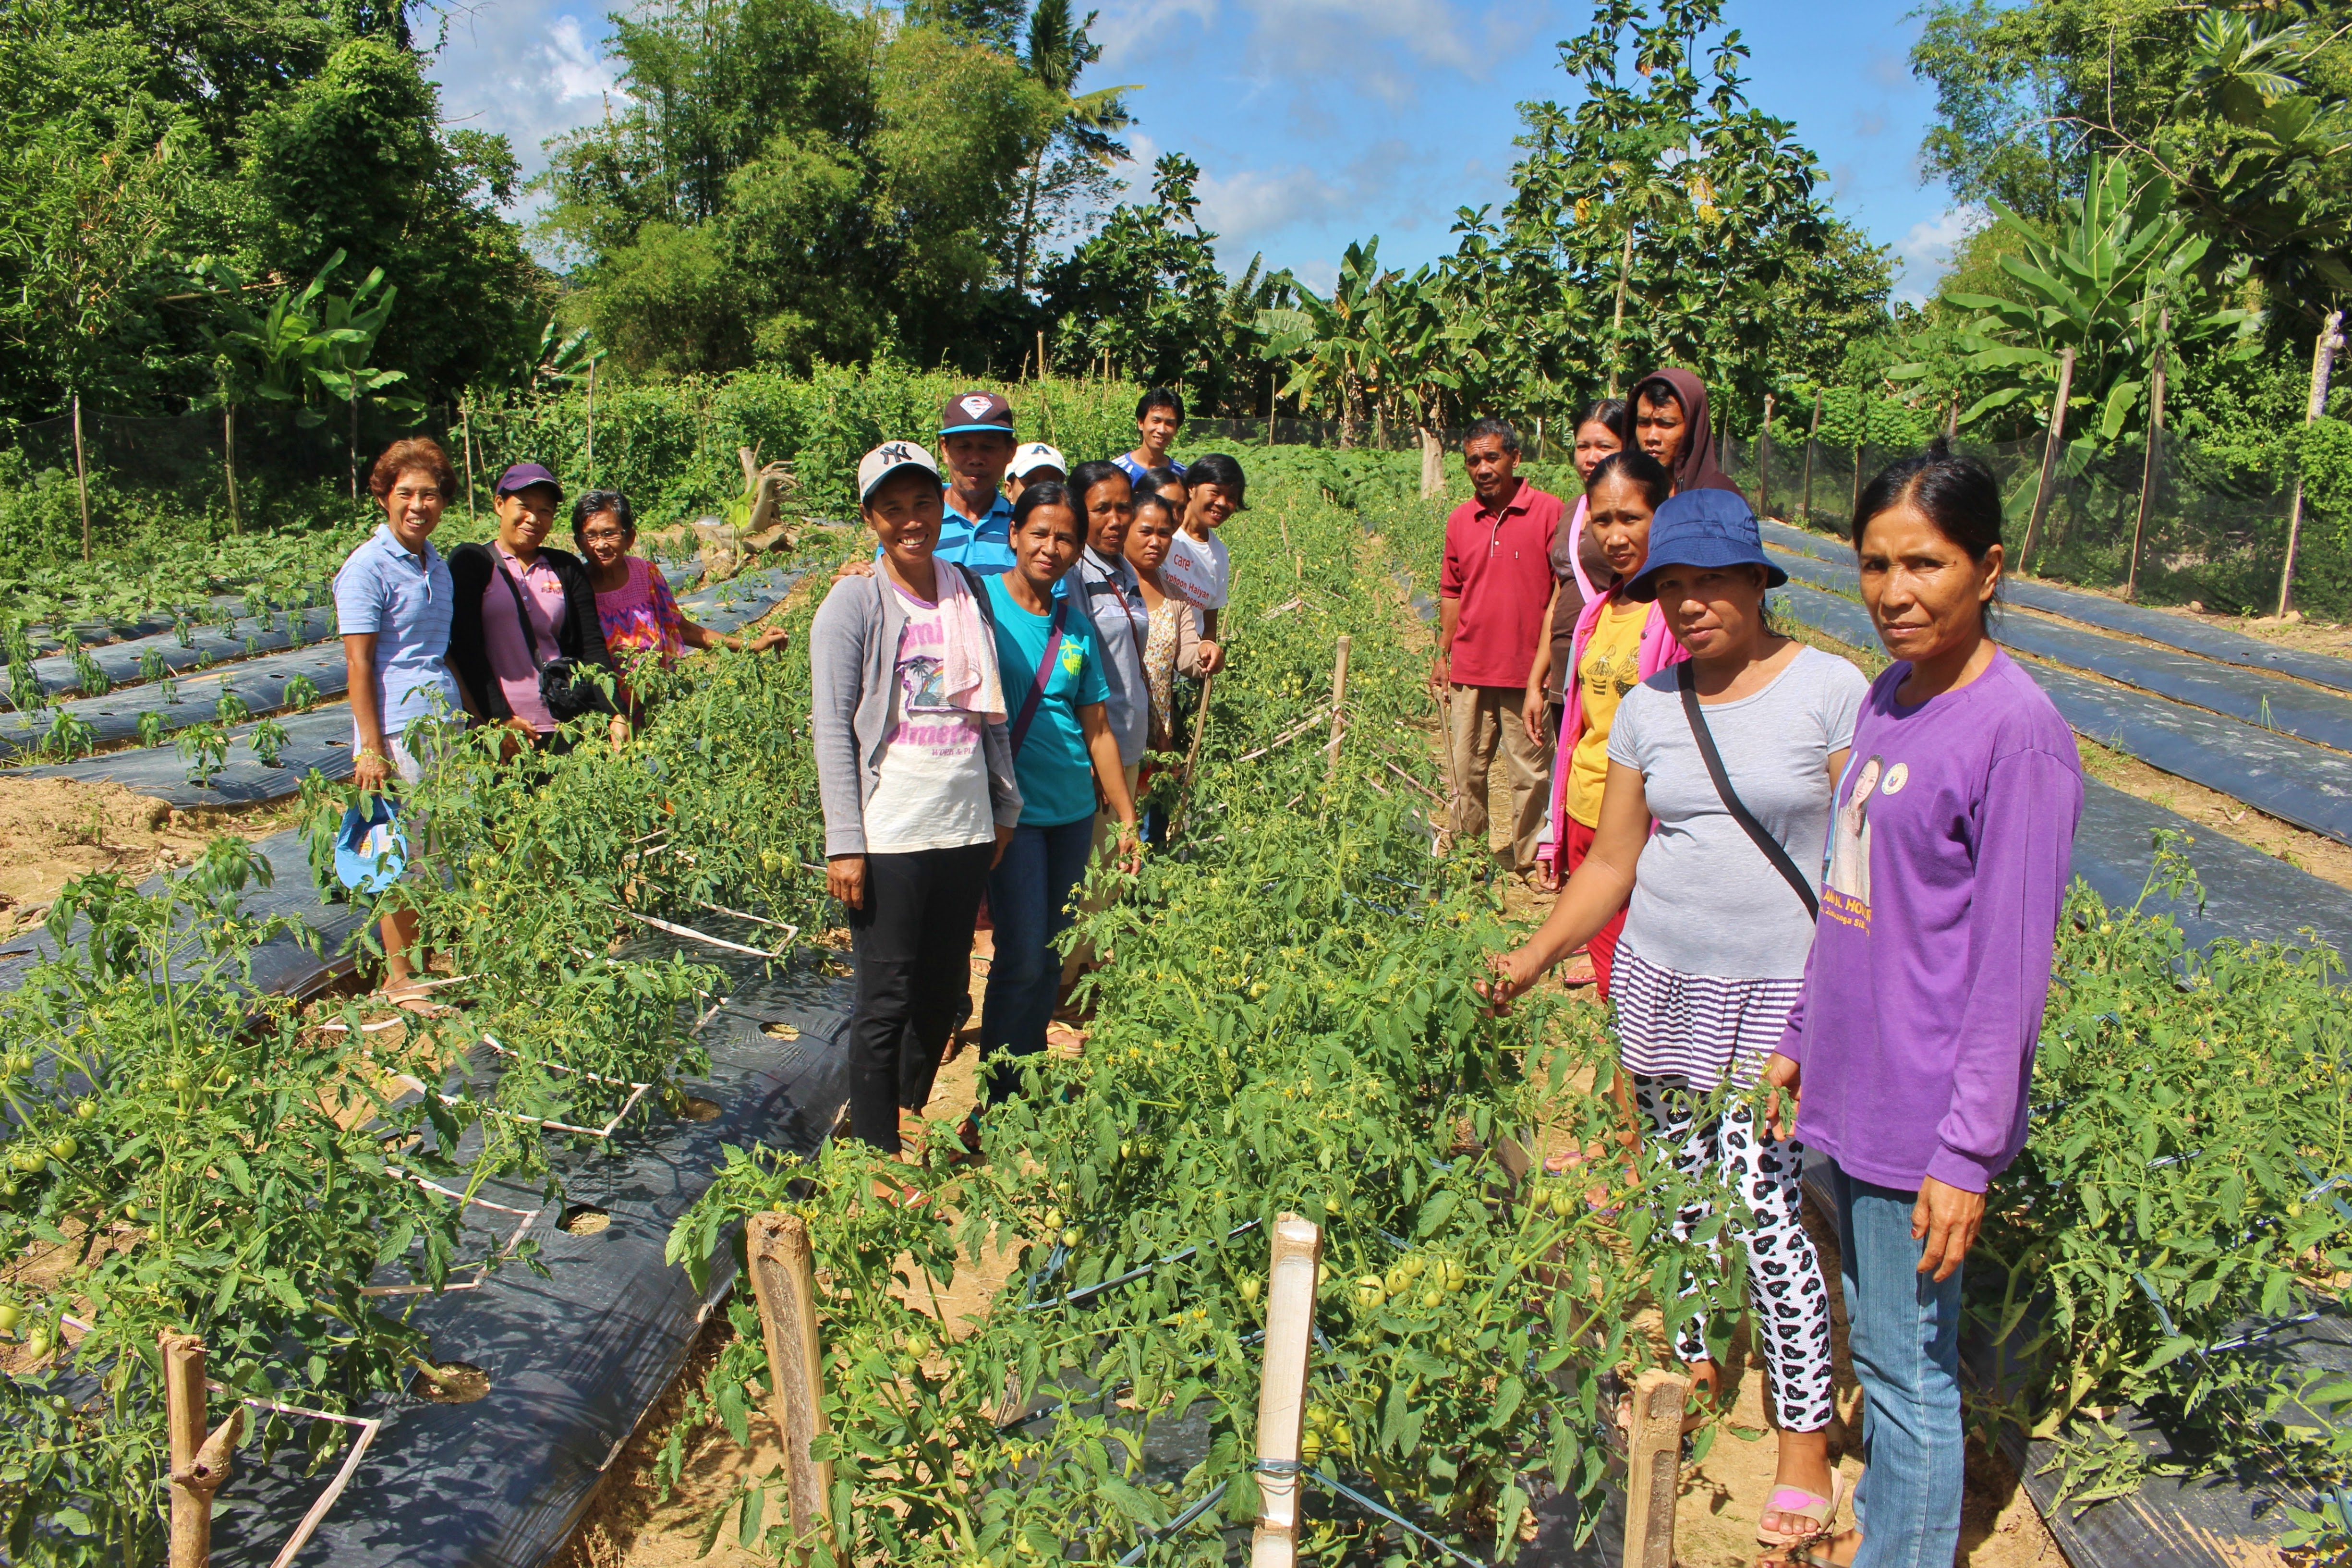 Farmers in Iloilo establish vegetable demo farms for learning and income generation